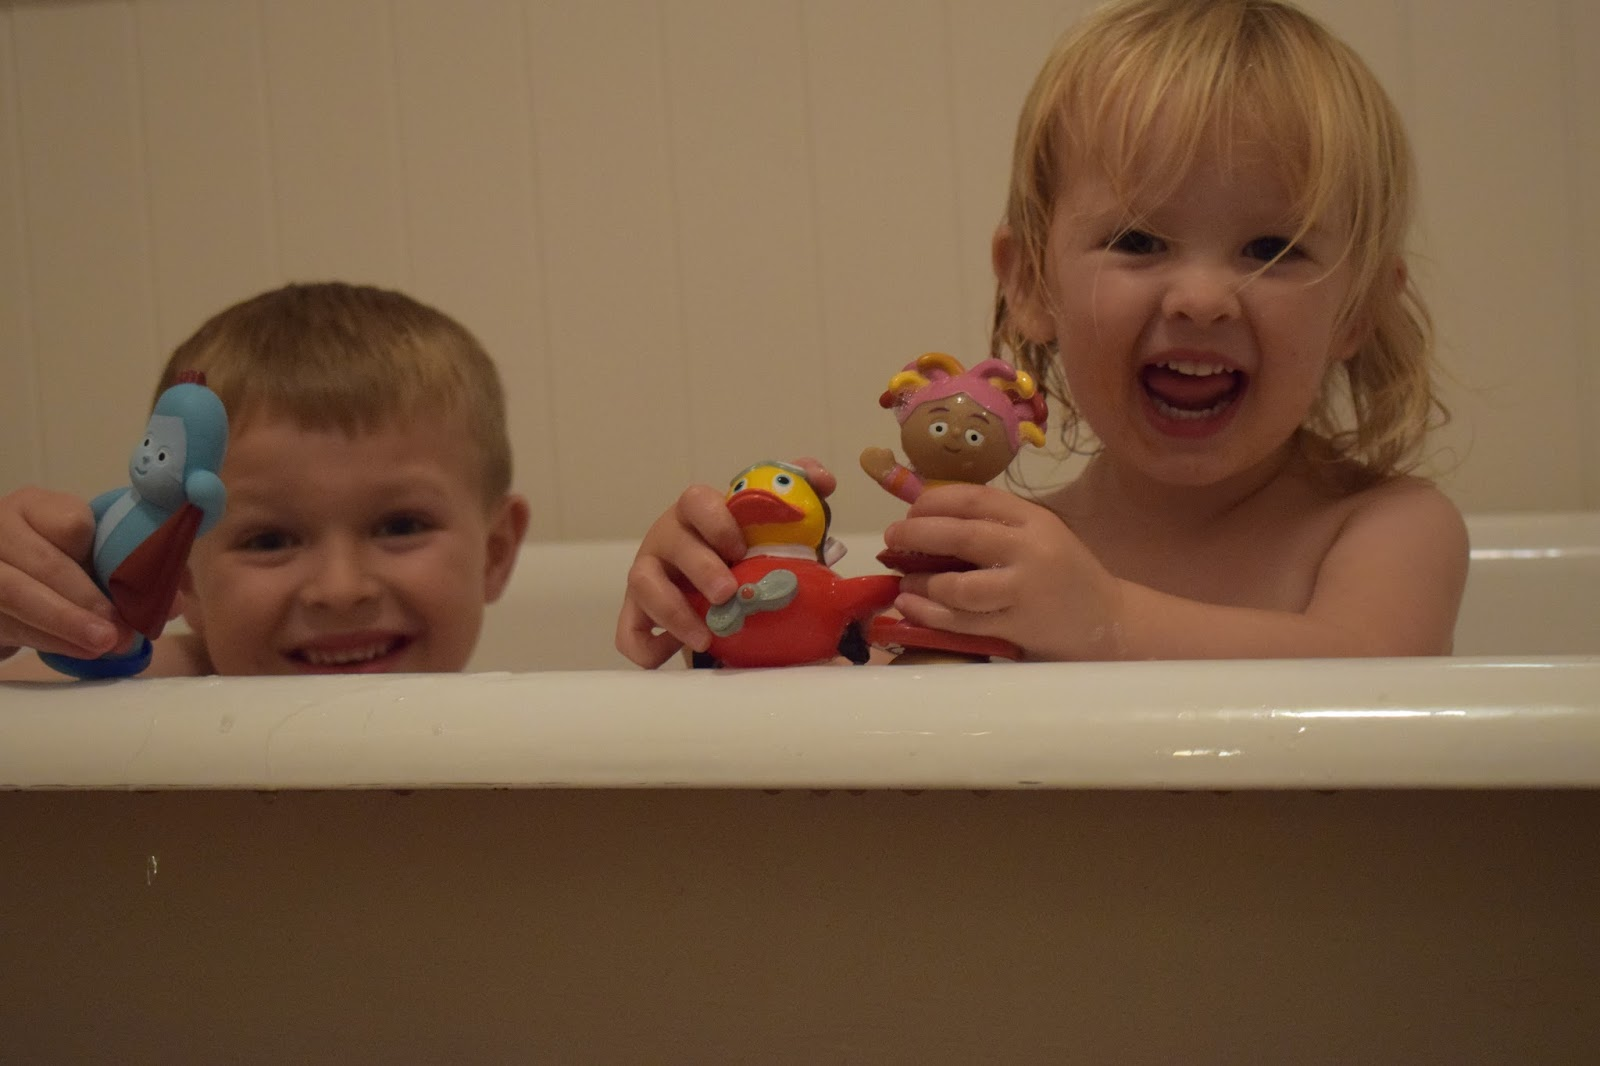 bath to bed with In The Night Garden | Mummy Memories ❤